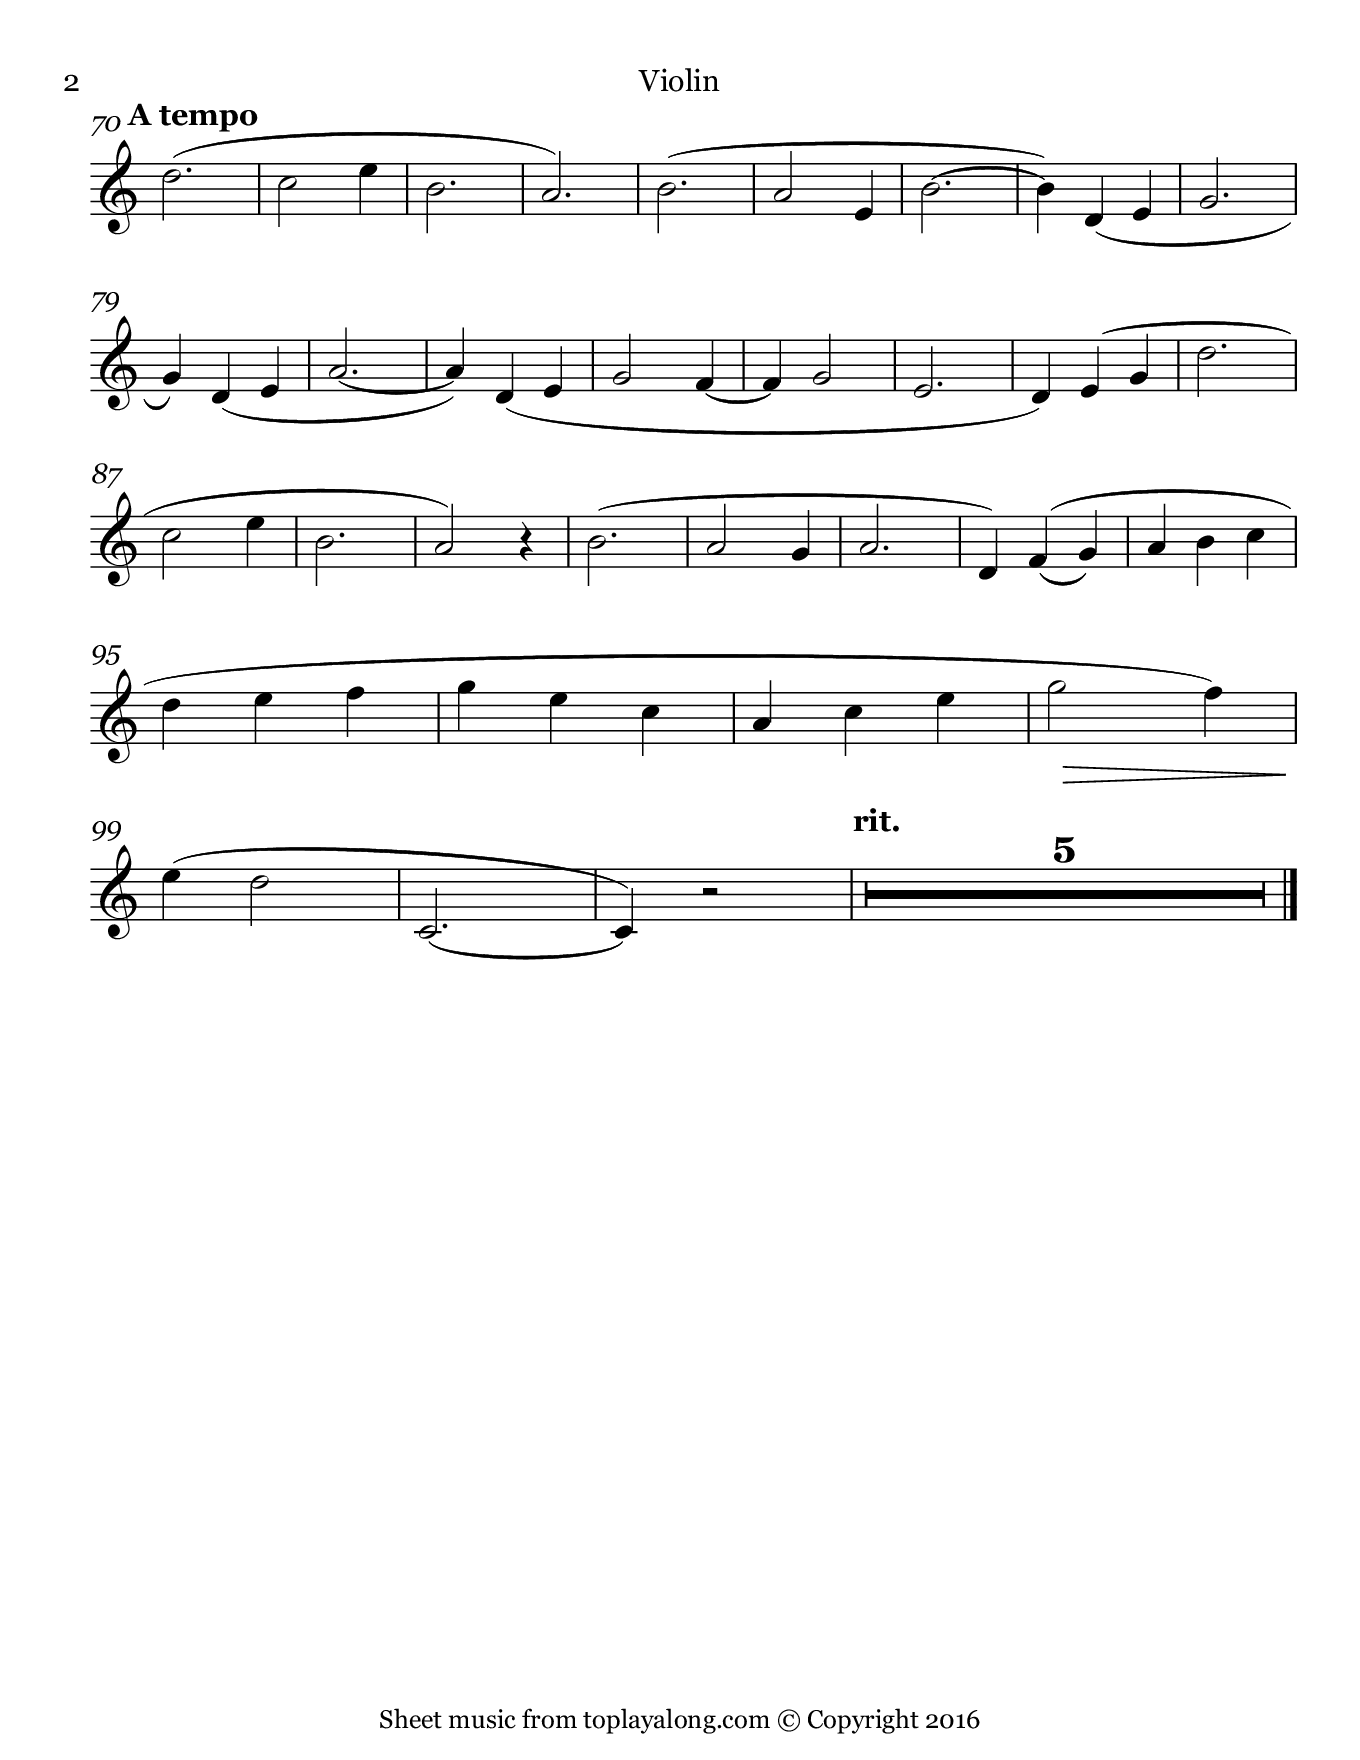 Je te veux by Satie. Sheet music for Violin, page 2.